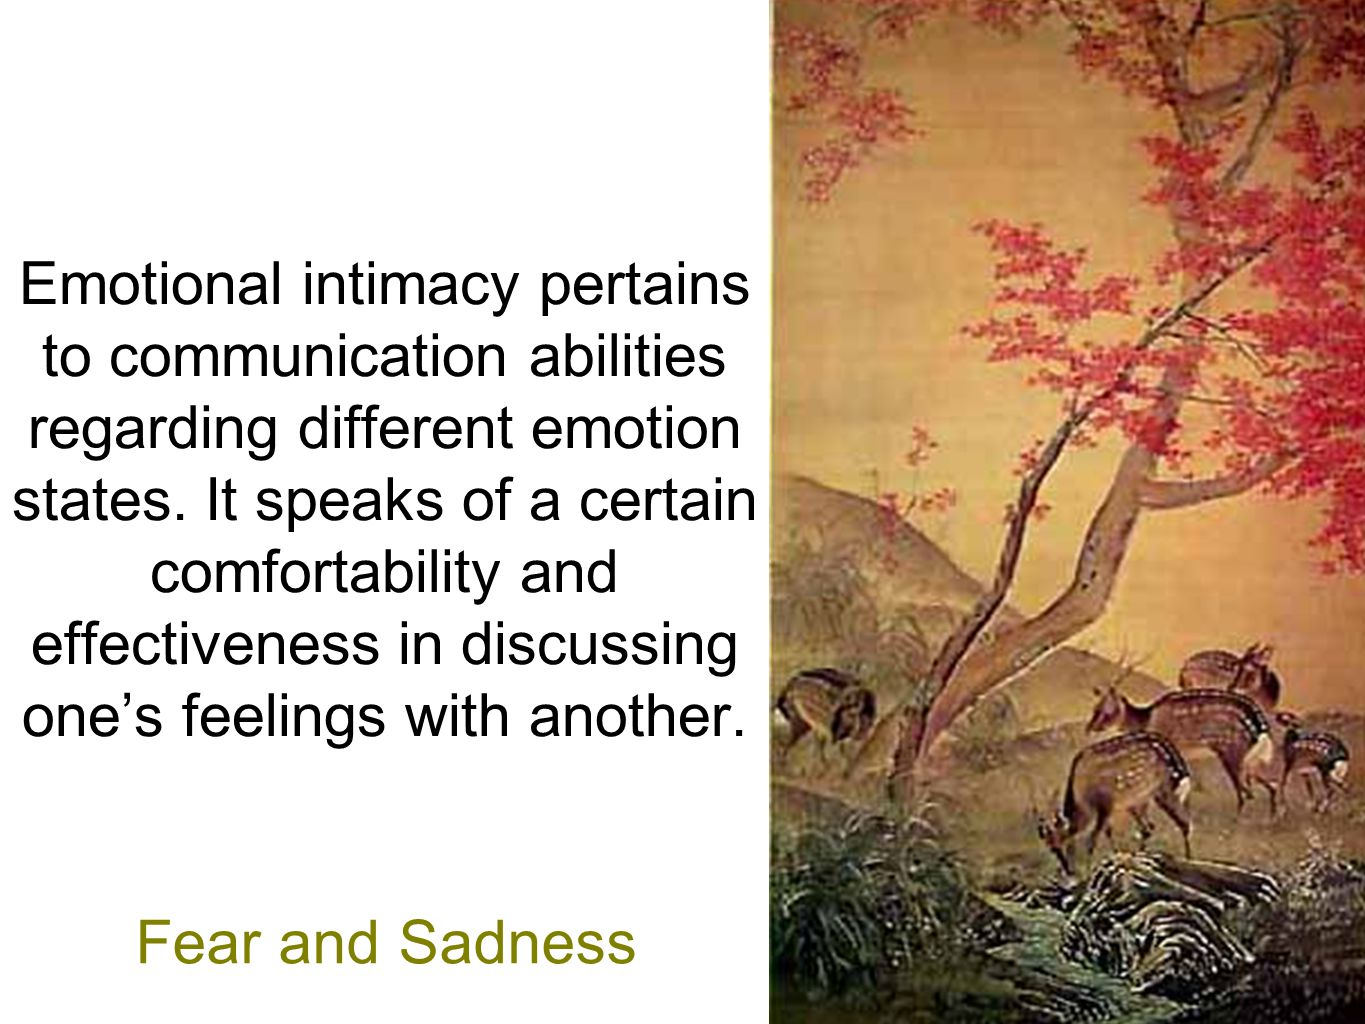 Emotional intimacy pertains to communication abilities regarding different emotion states. It speaks of a certain comfortability and effectiveness in discussing one's feelings with another.